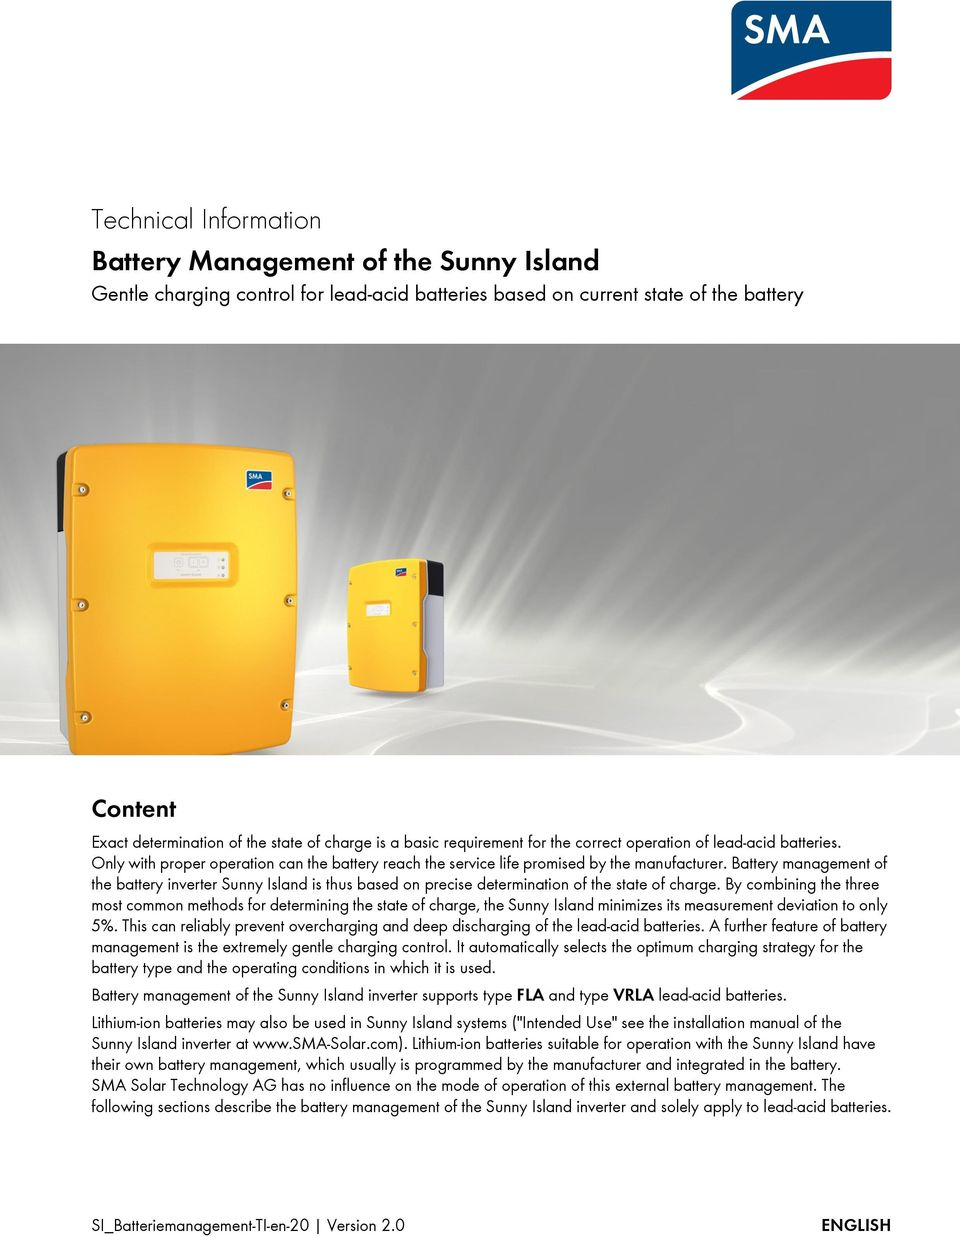 Battery management of the battery inverter Sunny Island is thus based on precise determination of the state of charge.